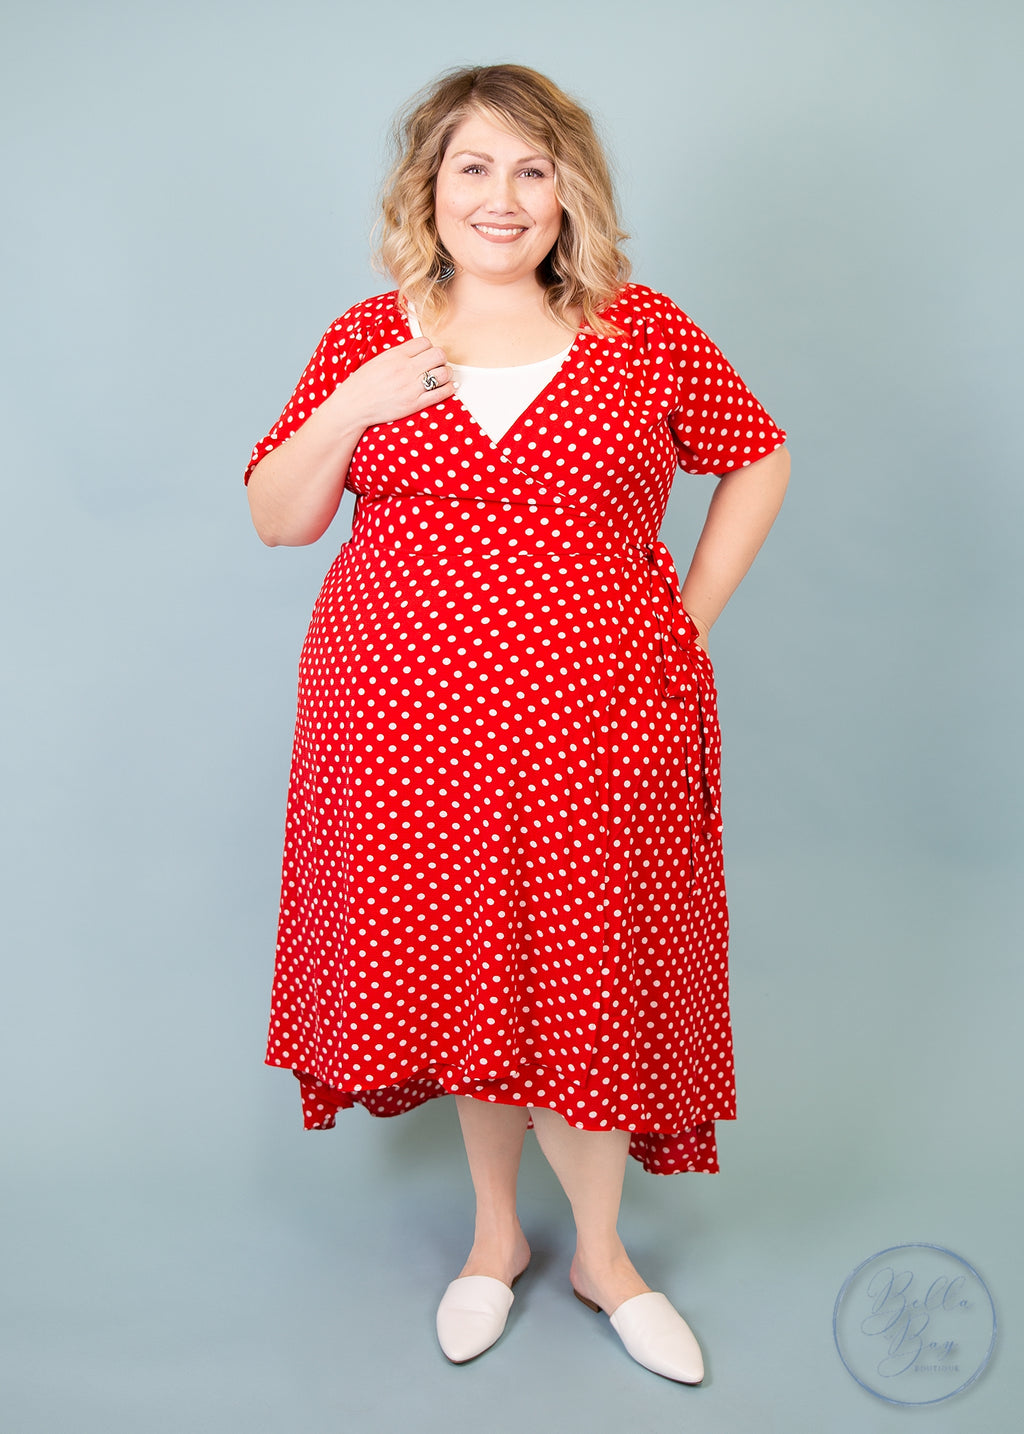 Paisley Raye Primrose Wrap Dress- Red and White Polka Dot (XL) - Paisley Raye with Bella Bay Boutique, shop now at  https://shopbellabay.com/ or locally in Newport Oregon